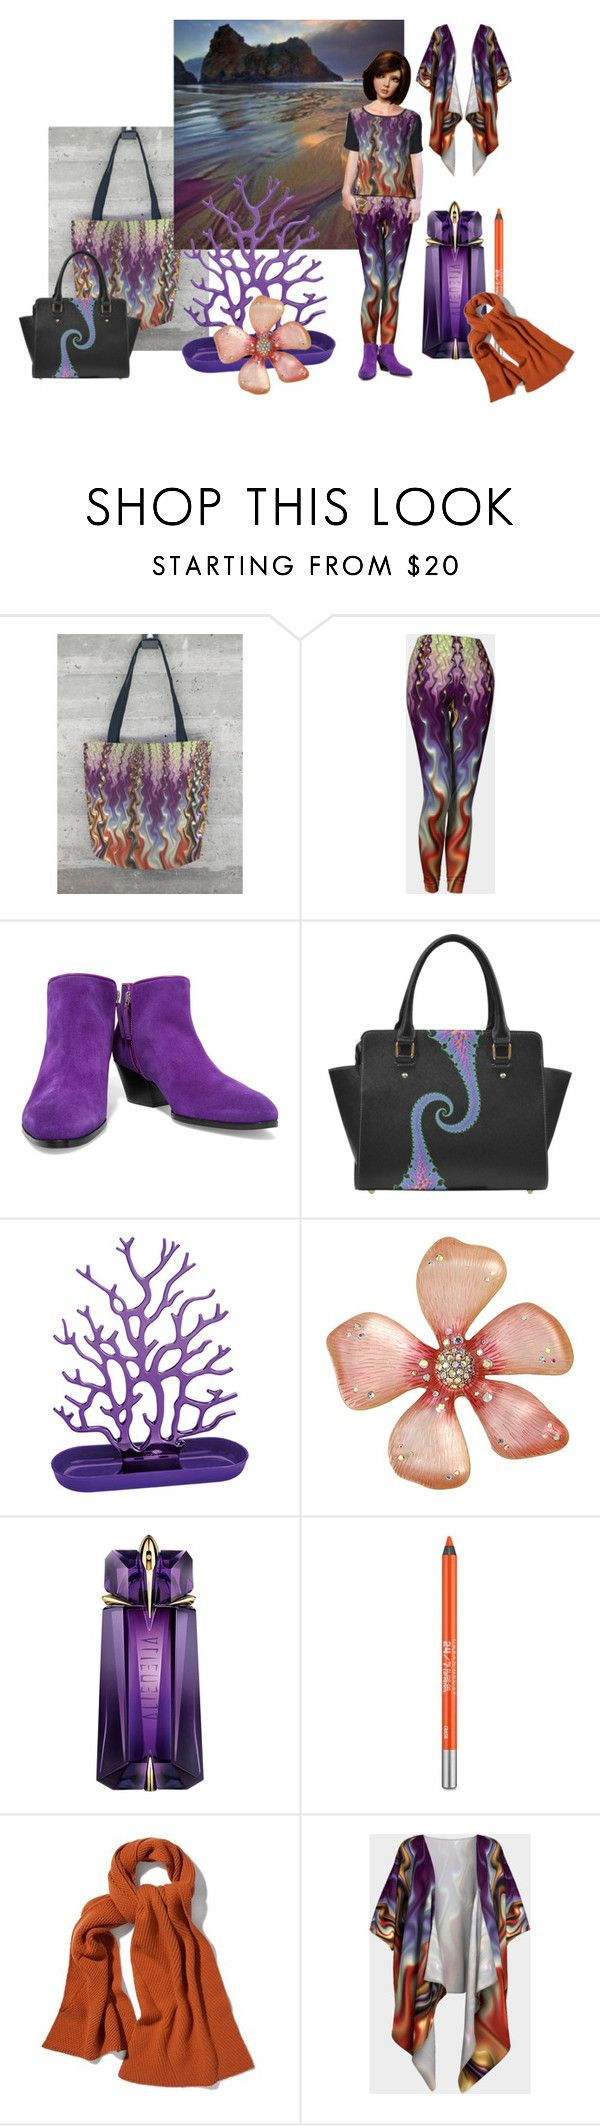 Gnarl Beach by fractallicious on Polyvore featuring Giuseppe Zanotti, Betsey Johnson, WtR London, Urban Decay, Thierry Mugler and Koziol